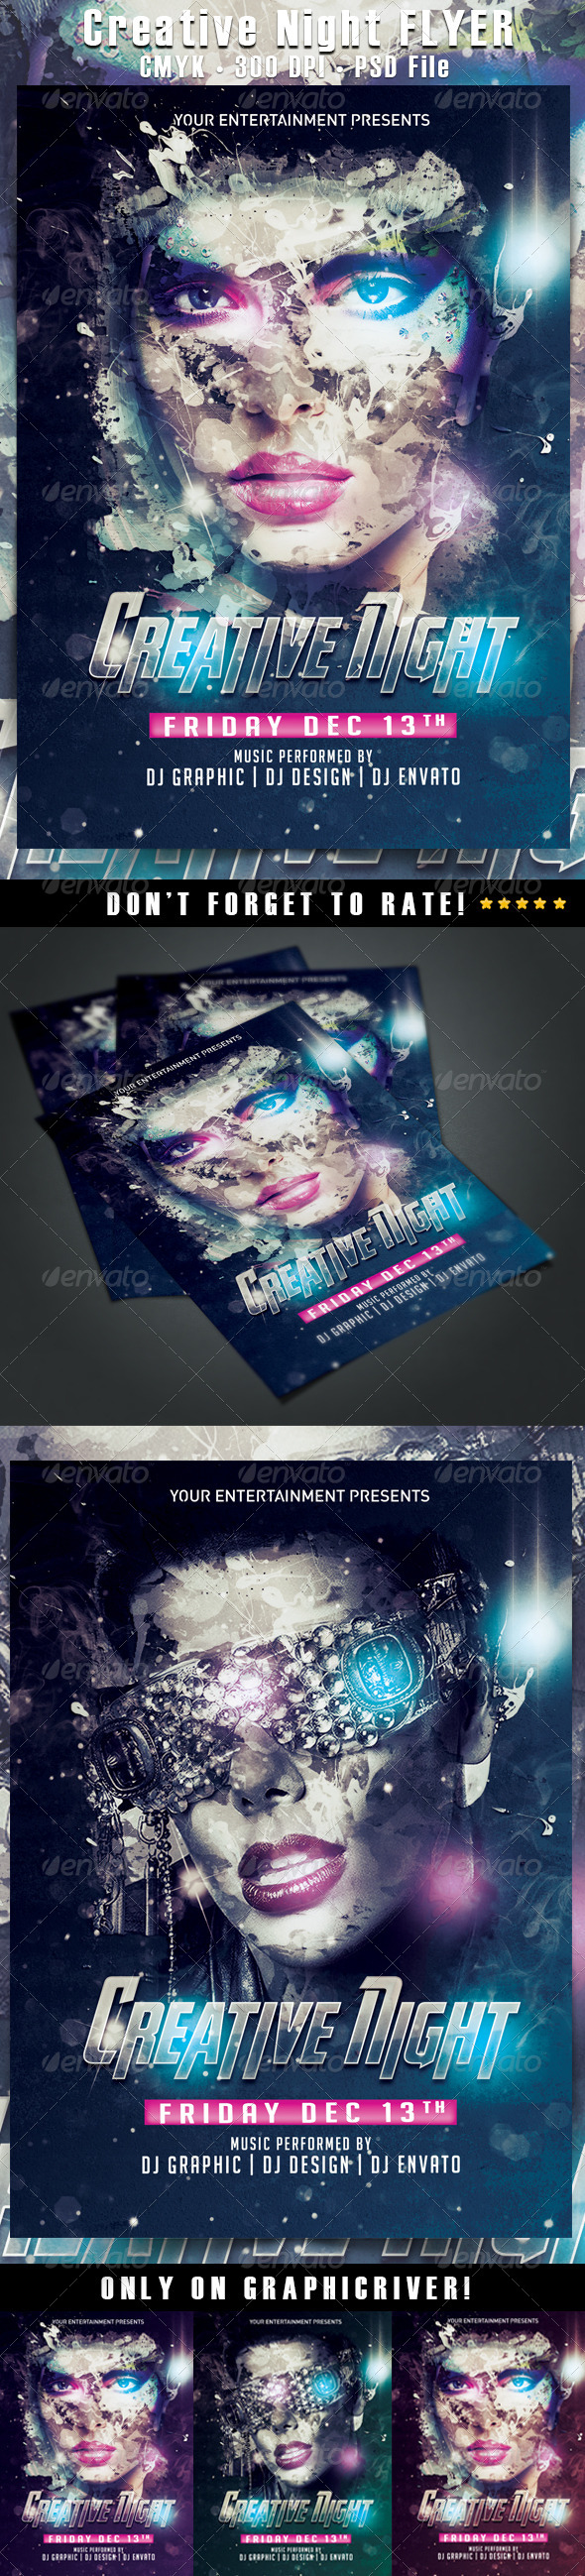 Creative Night Flyer - Clubs & Parties Events